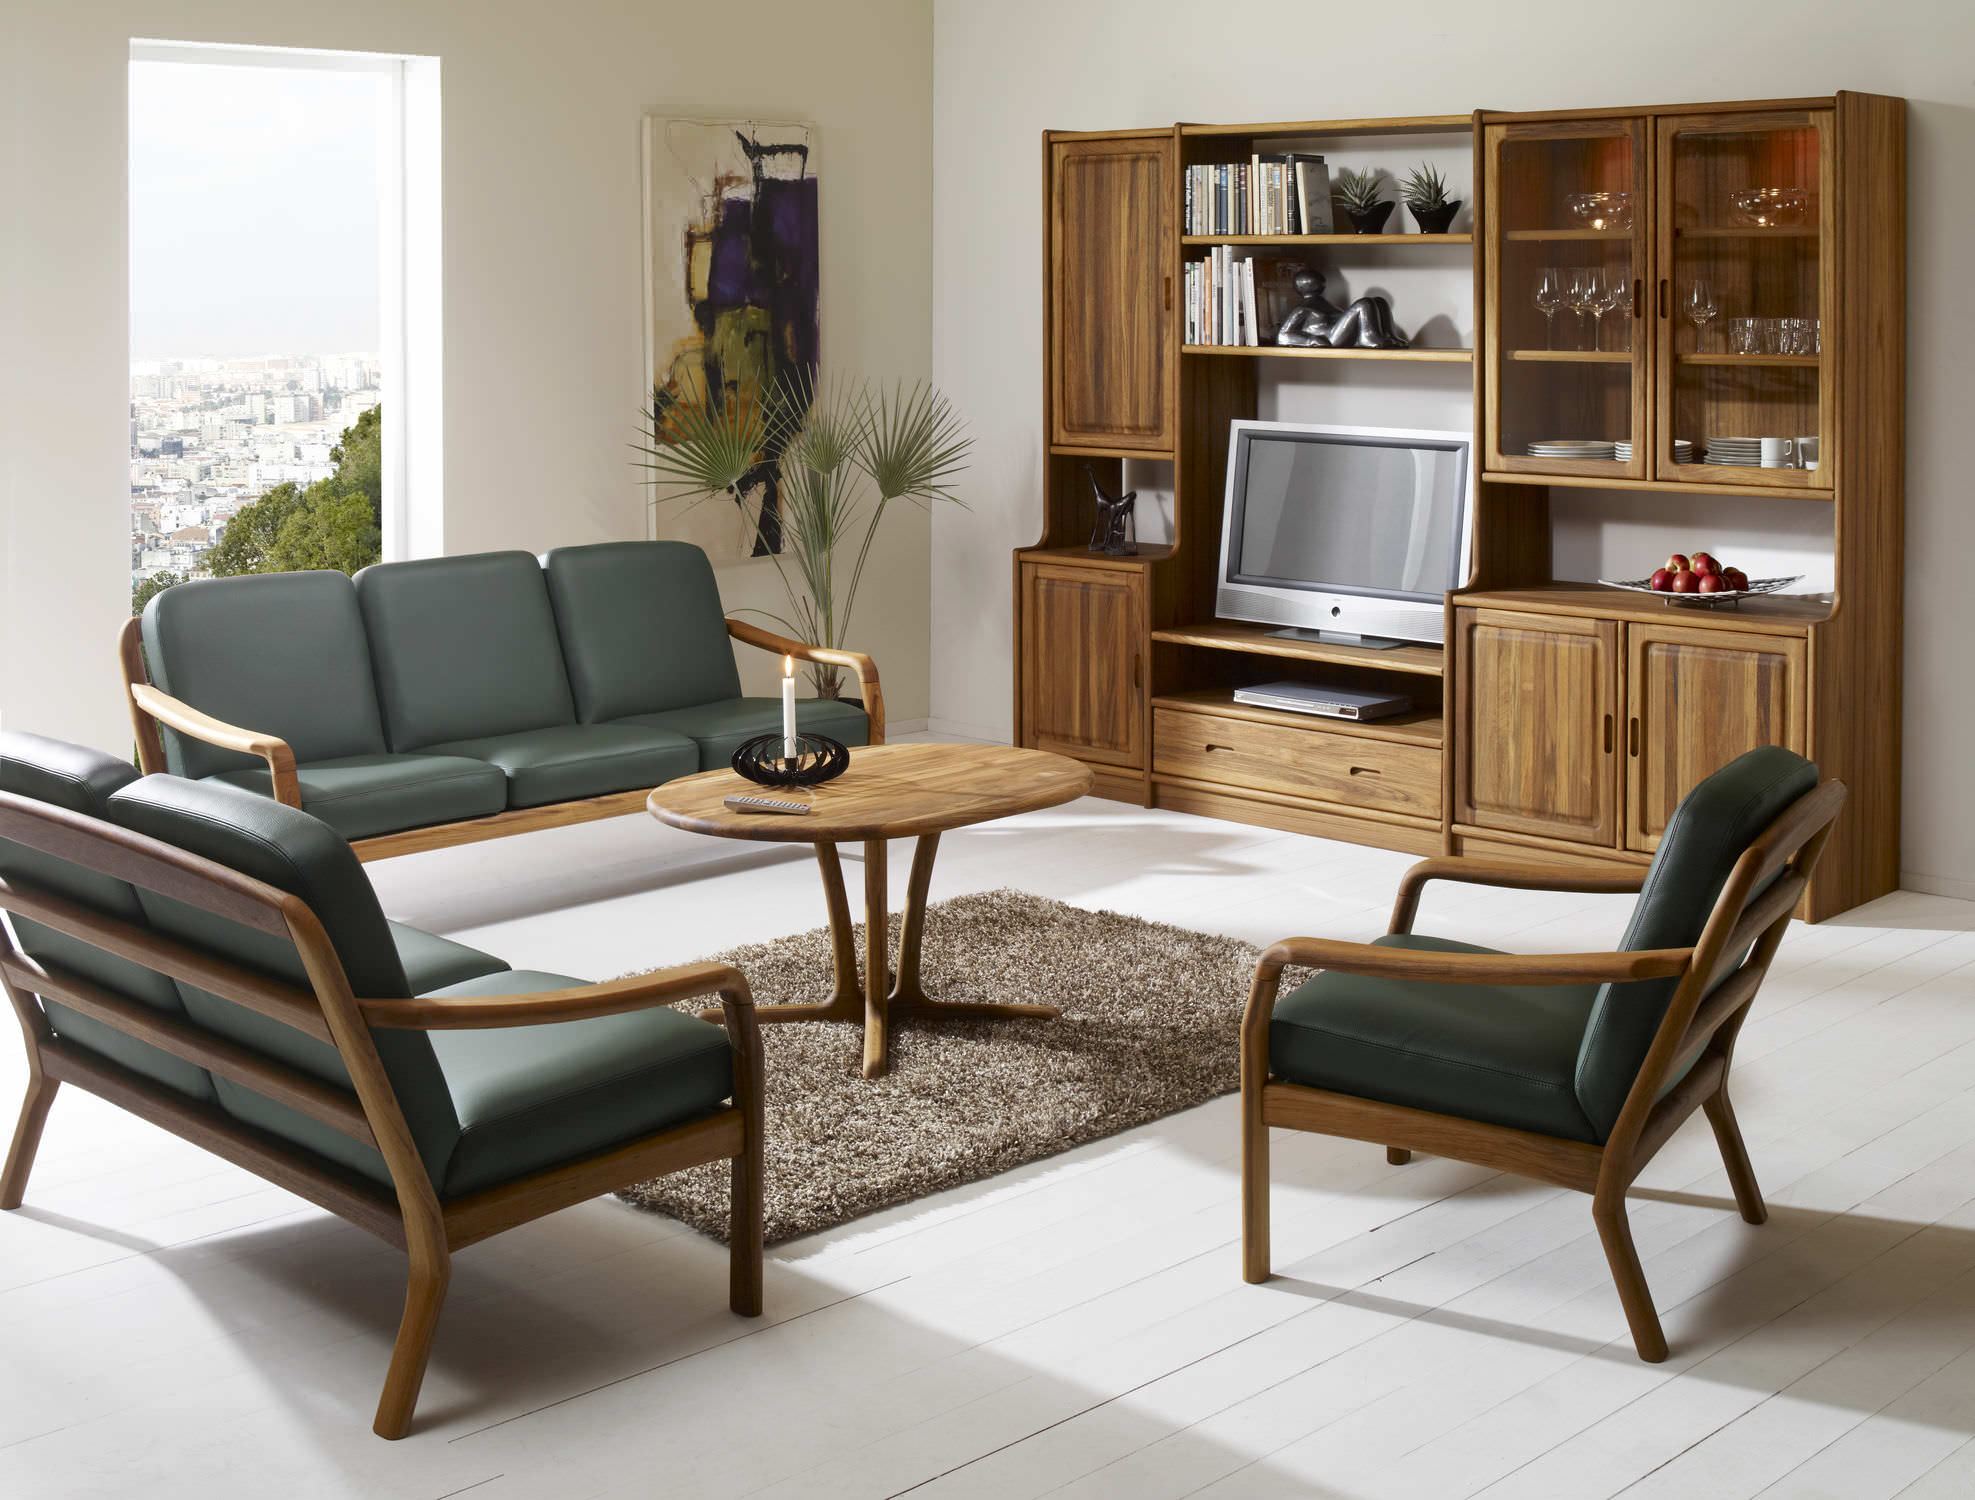 Contemporary sofa / wooden / 3-seater / green - 1260 - dyrlund